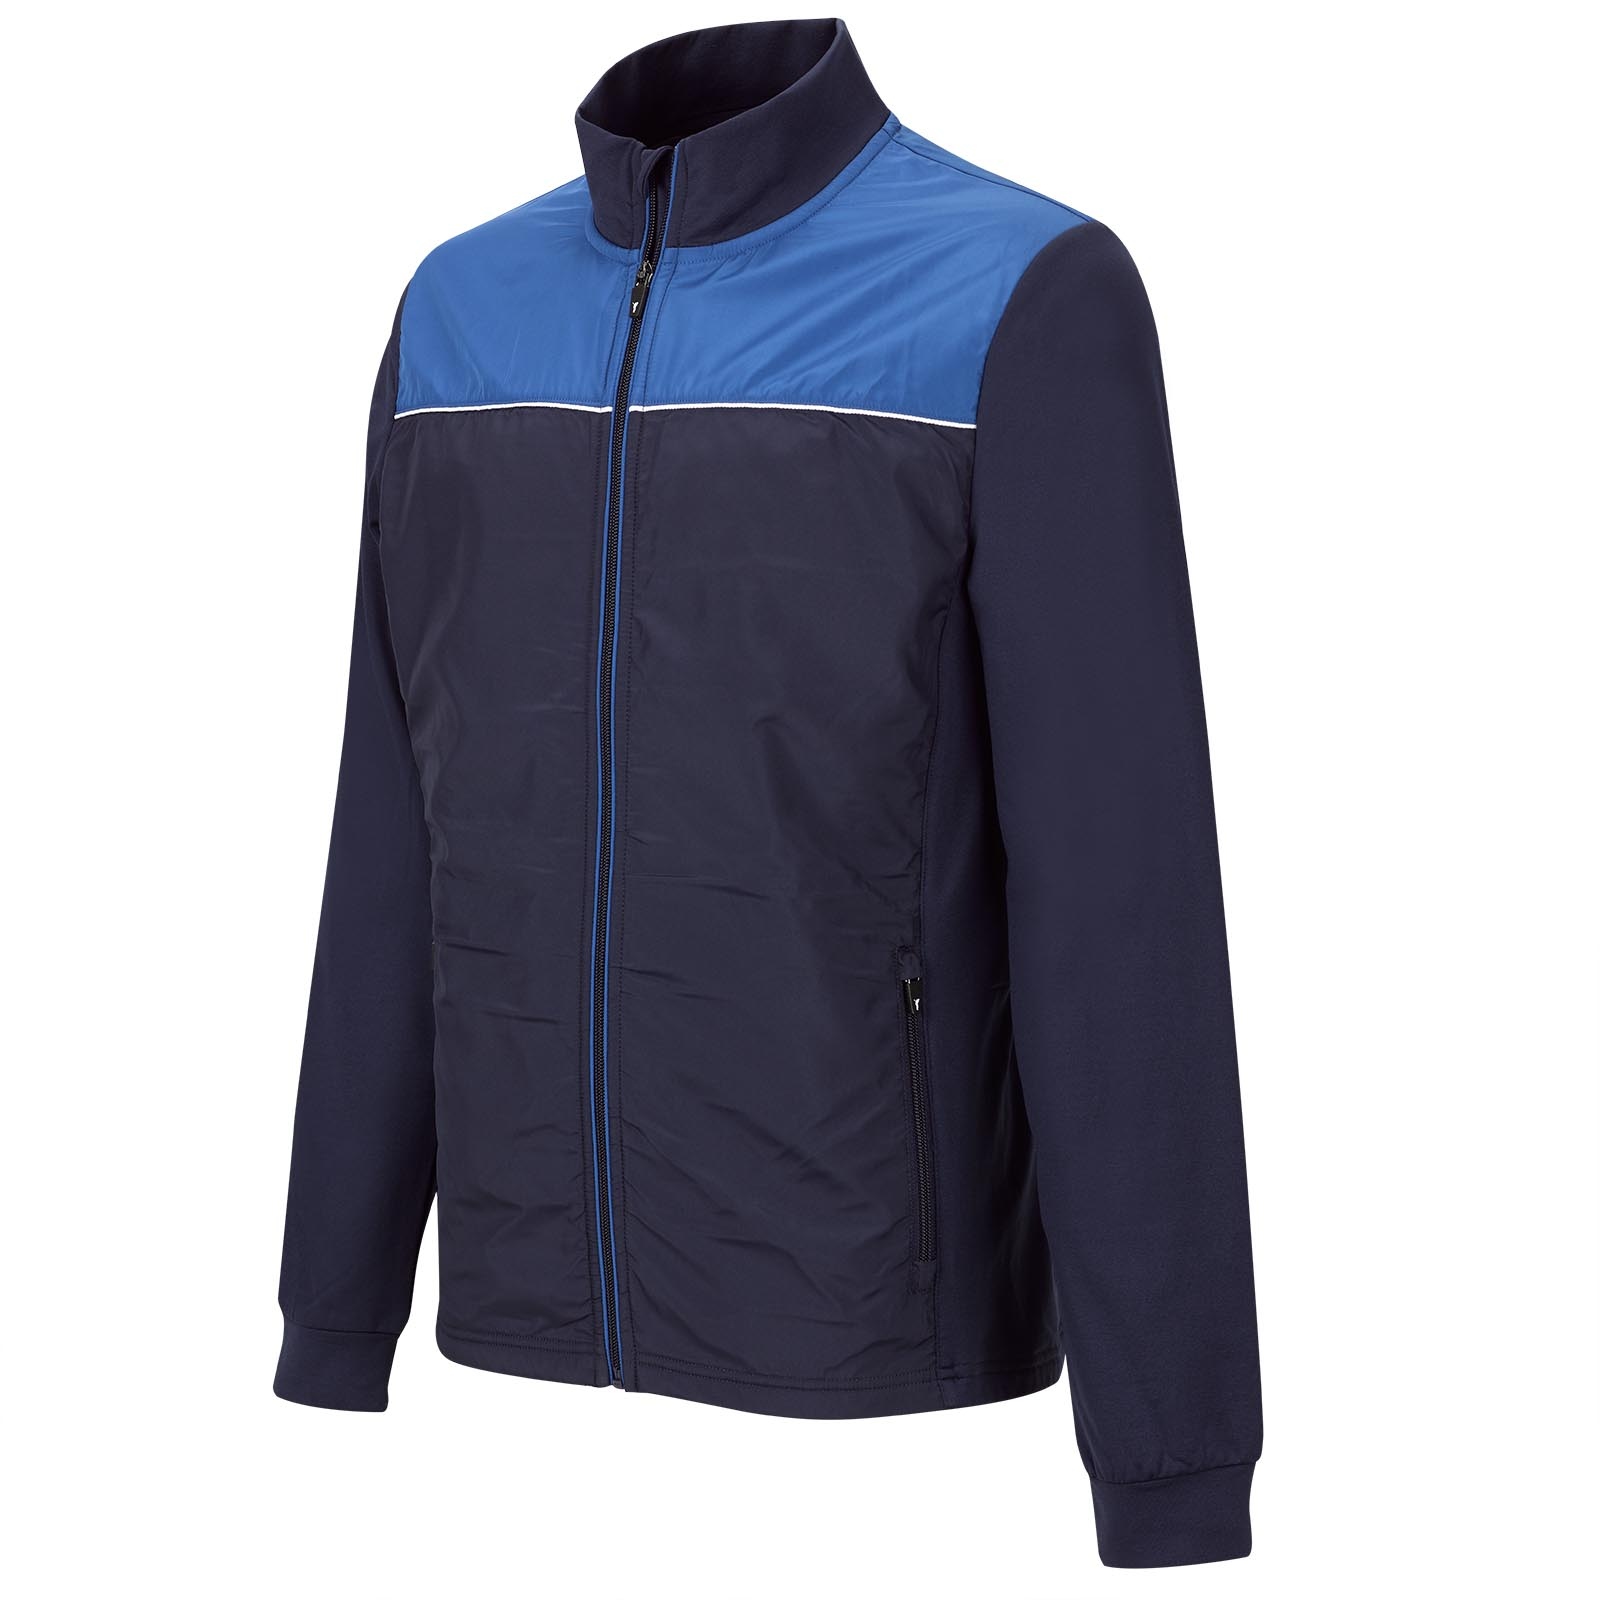 Leichte Herren Golf Performance Stretchjacke im Pro Look